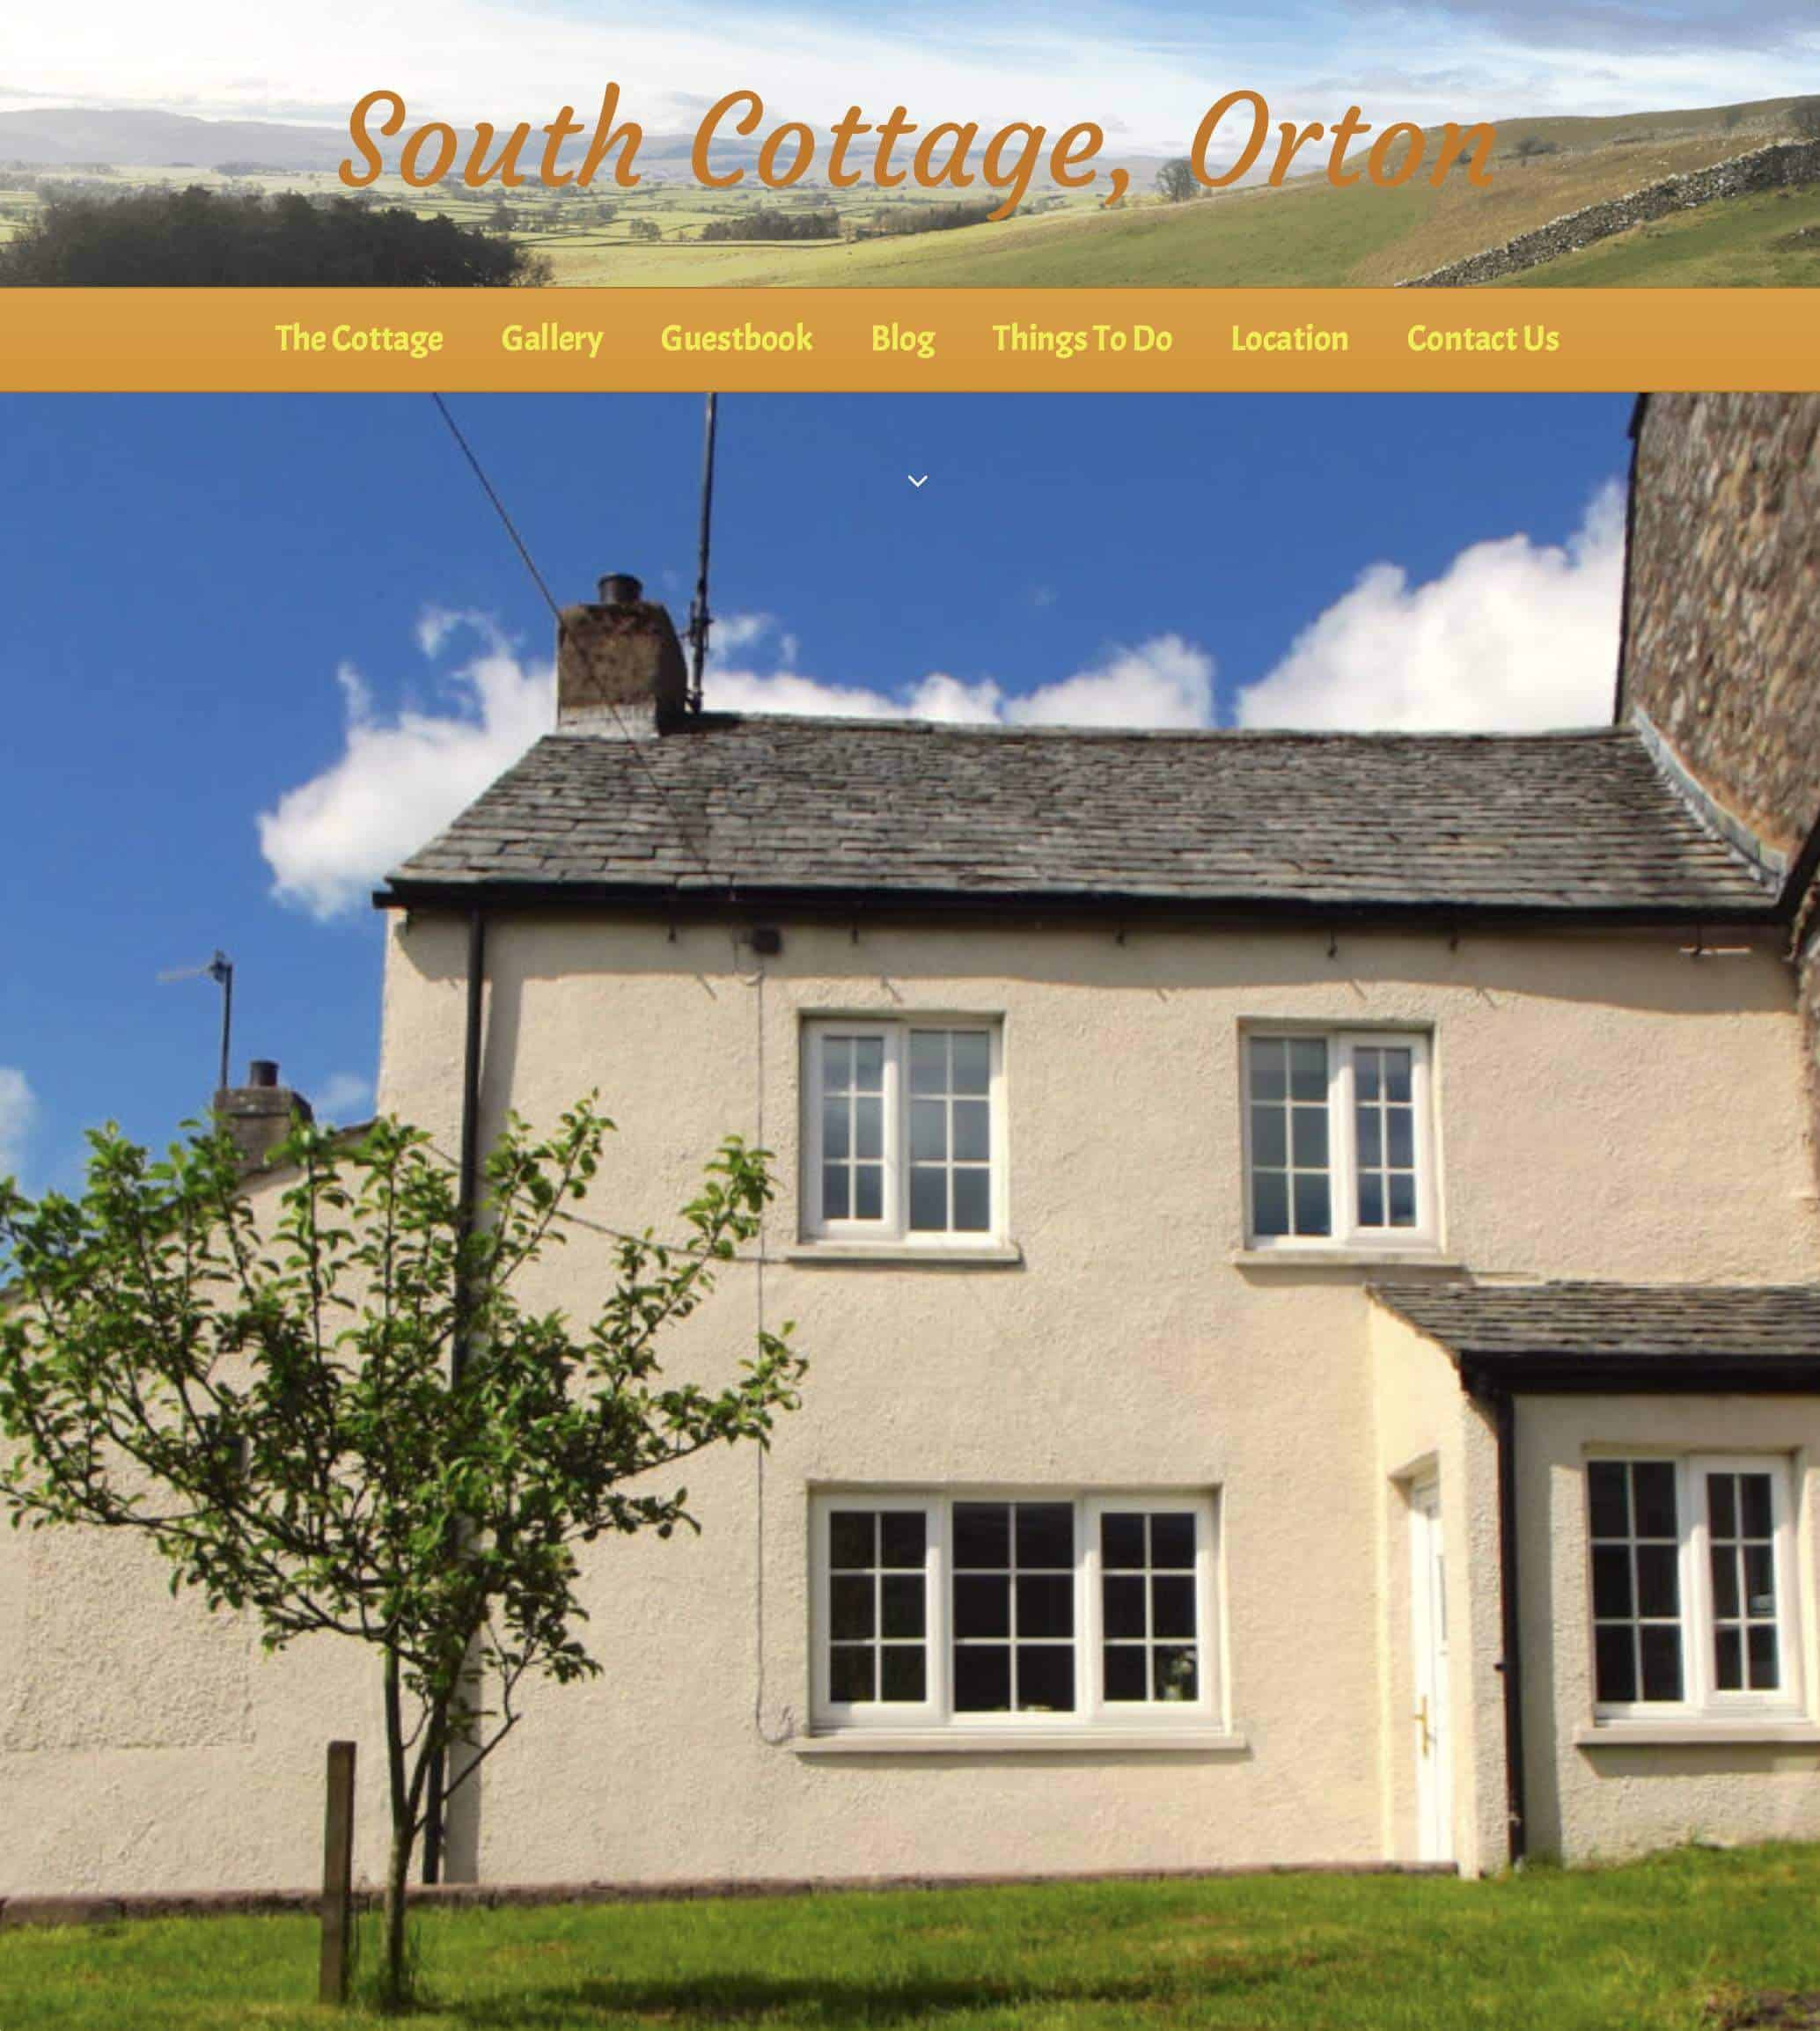 South Cottage Cheap In Lake District Holiday Cottage